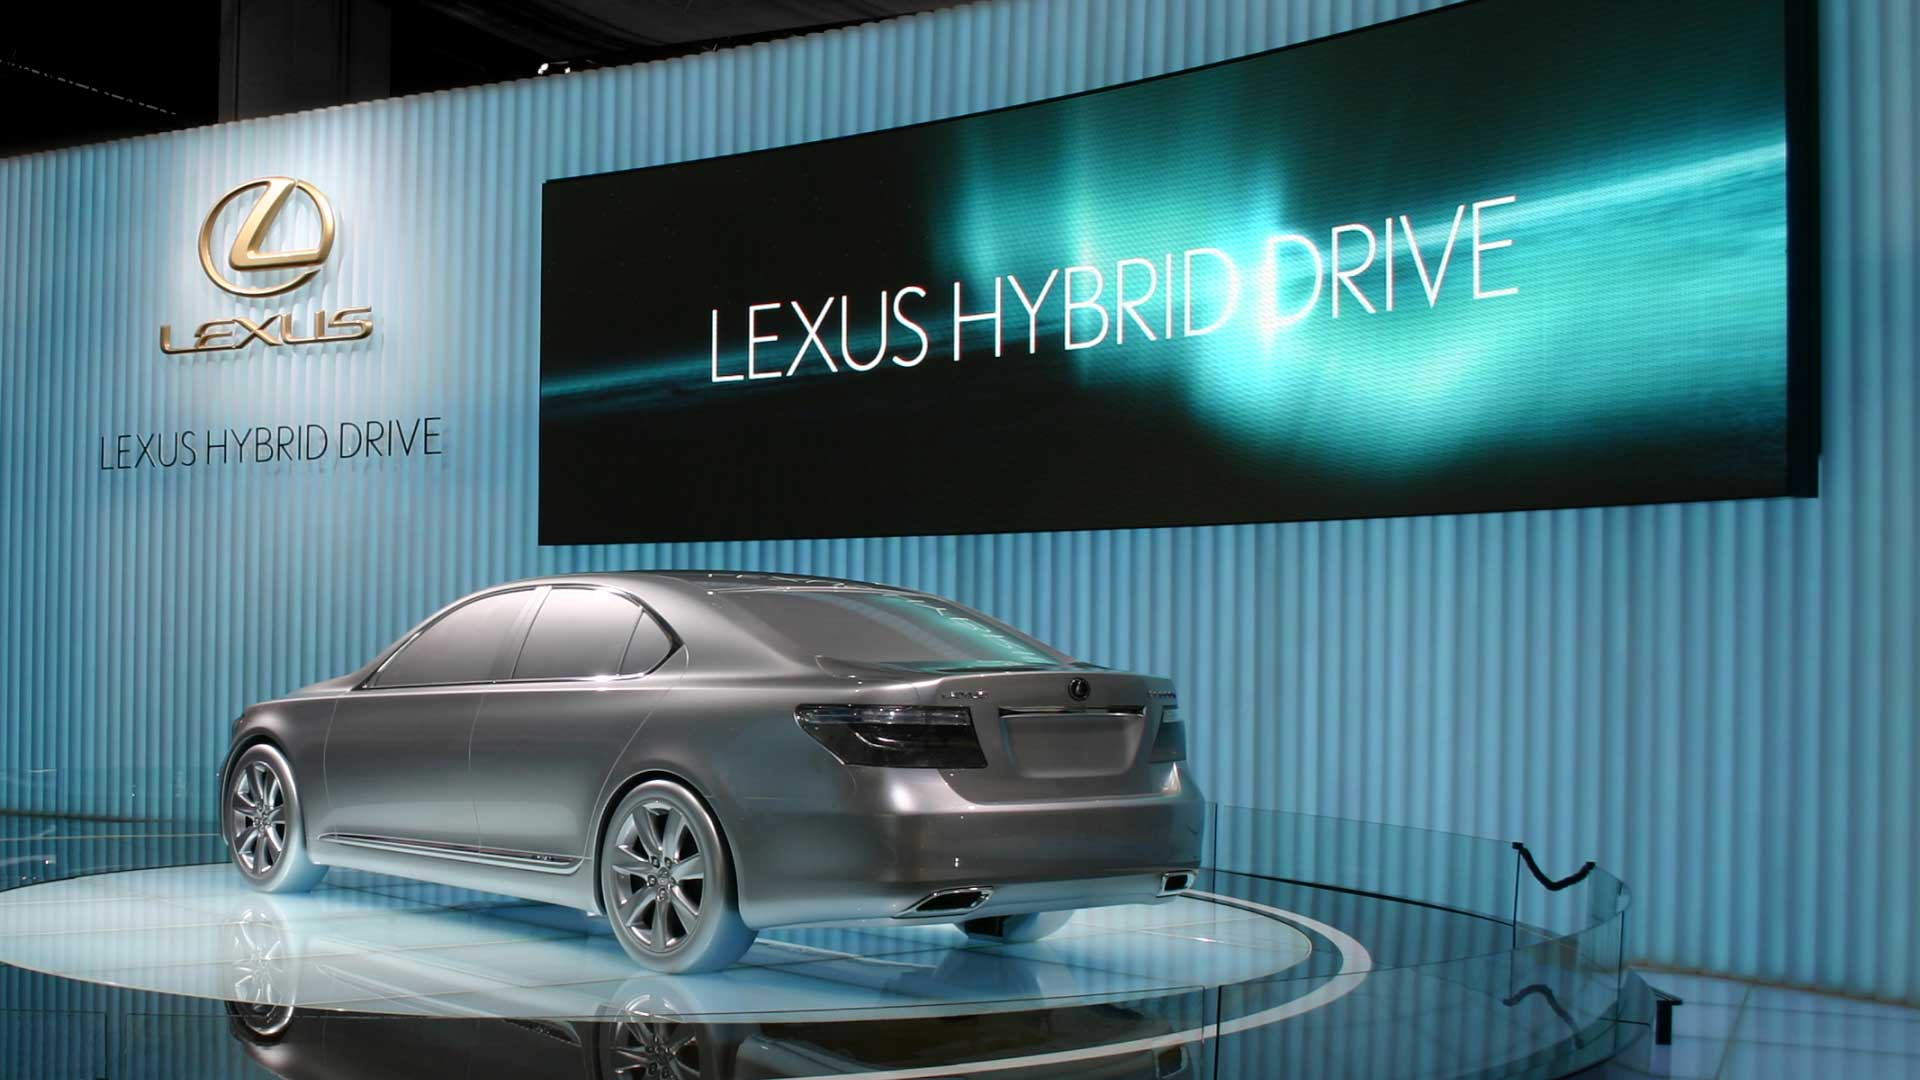 Car on stage. Still from Lexus Hybrid Drive Commercial